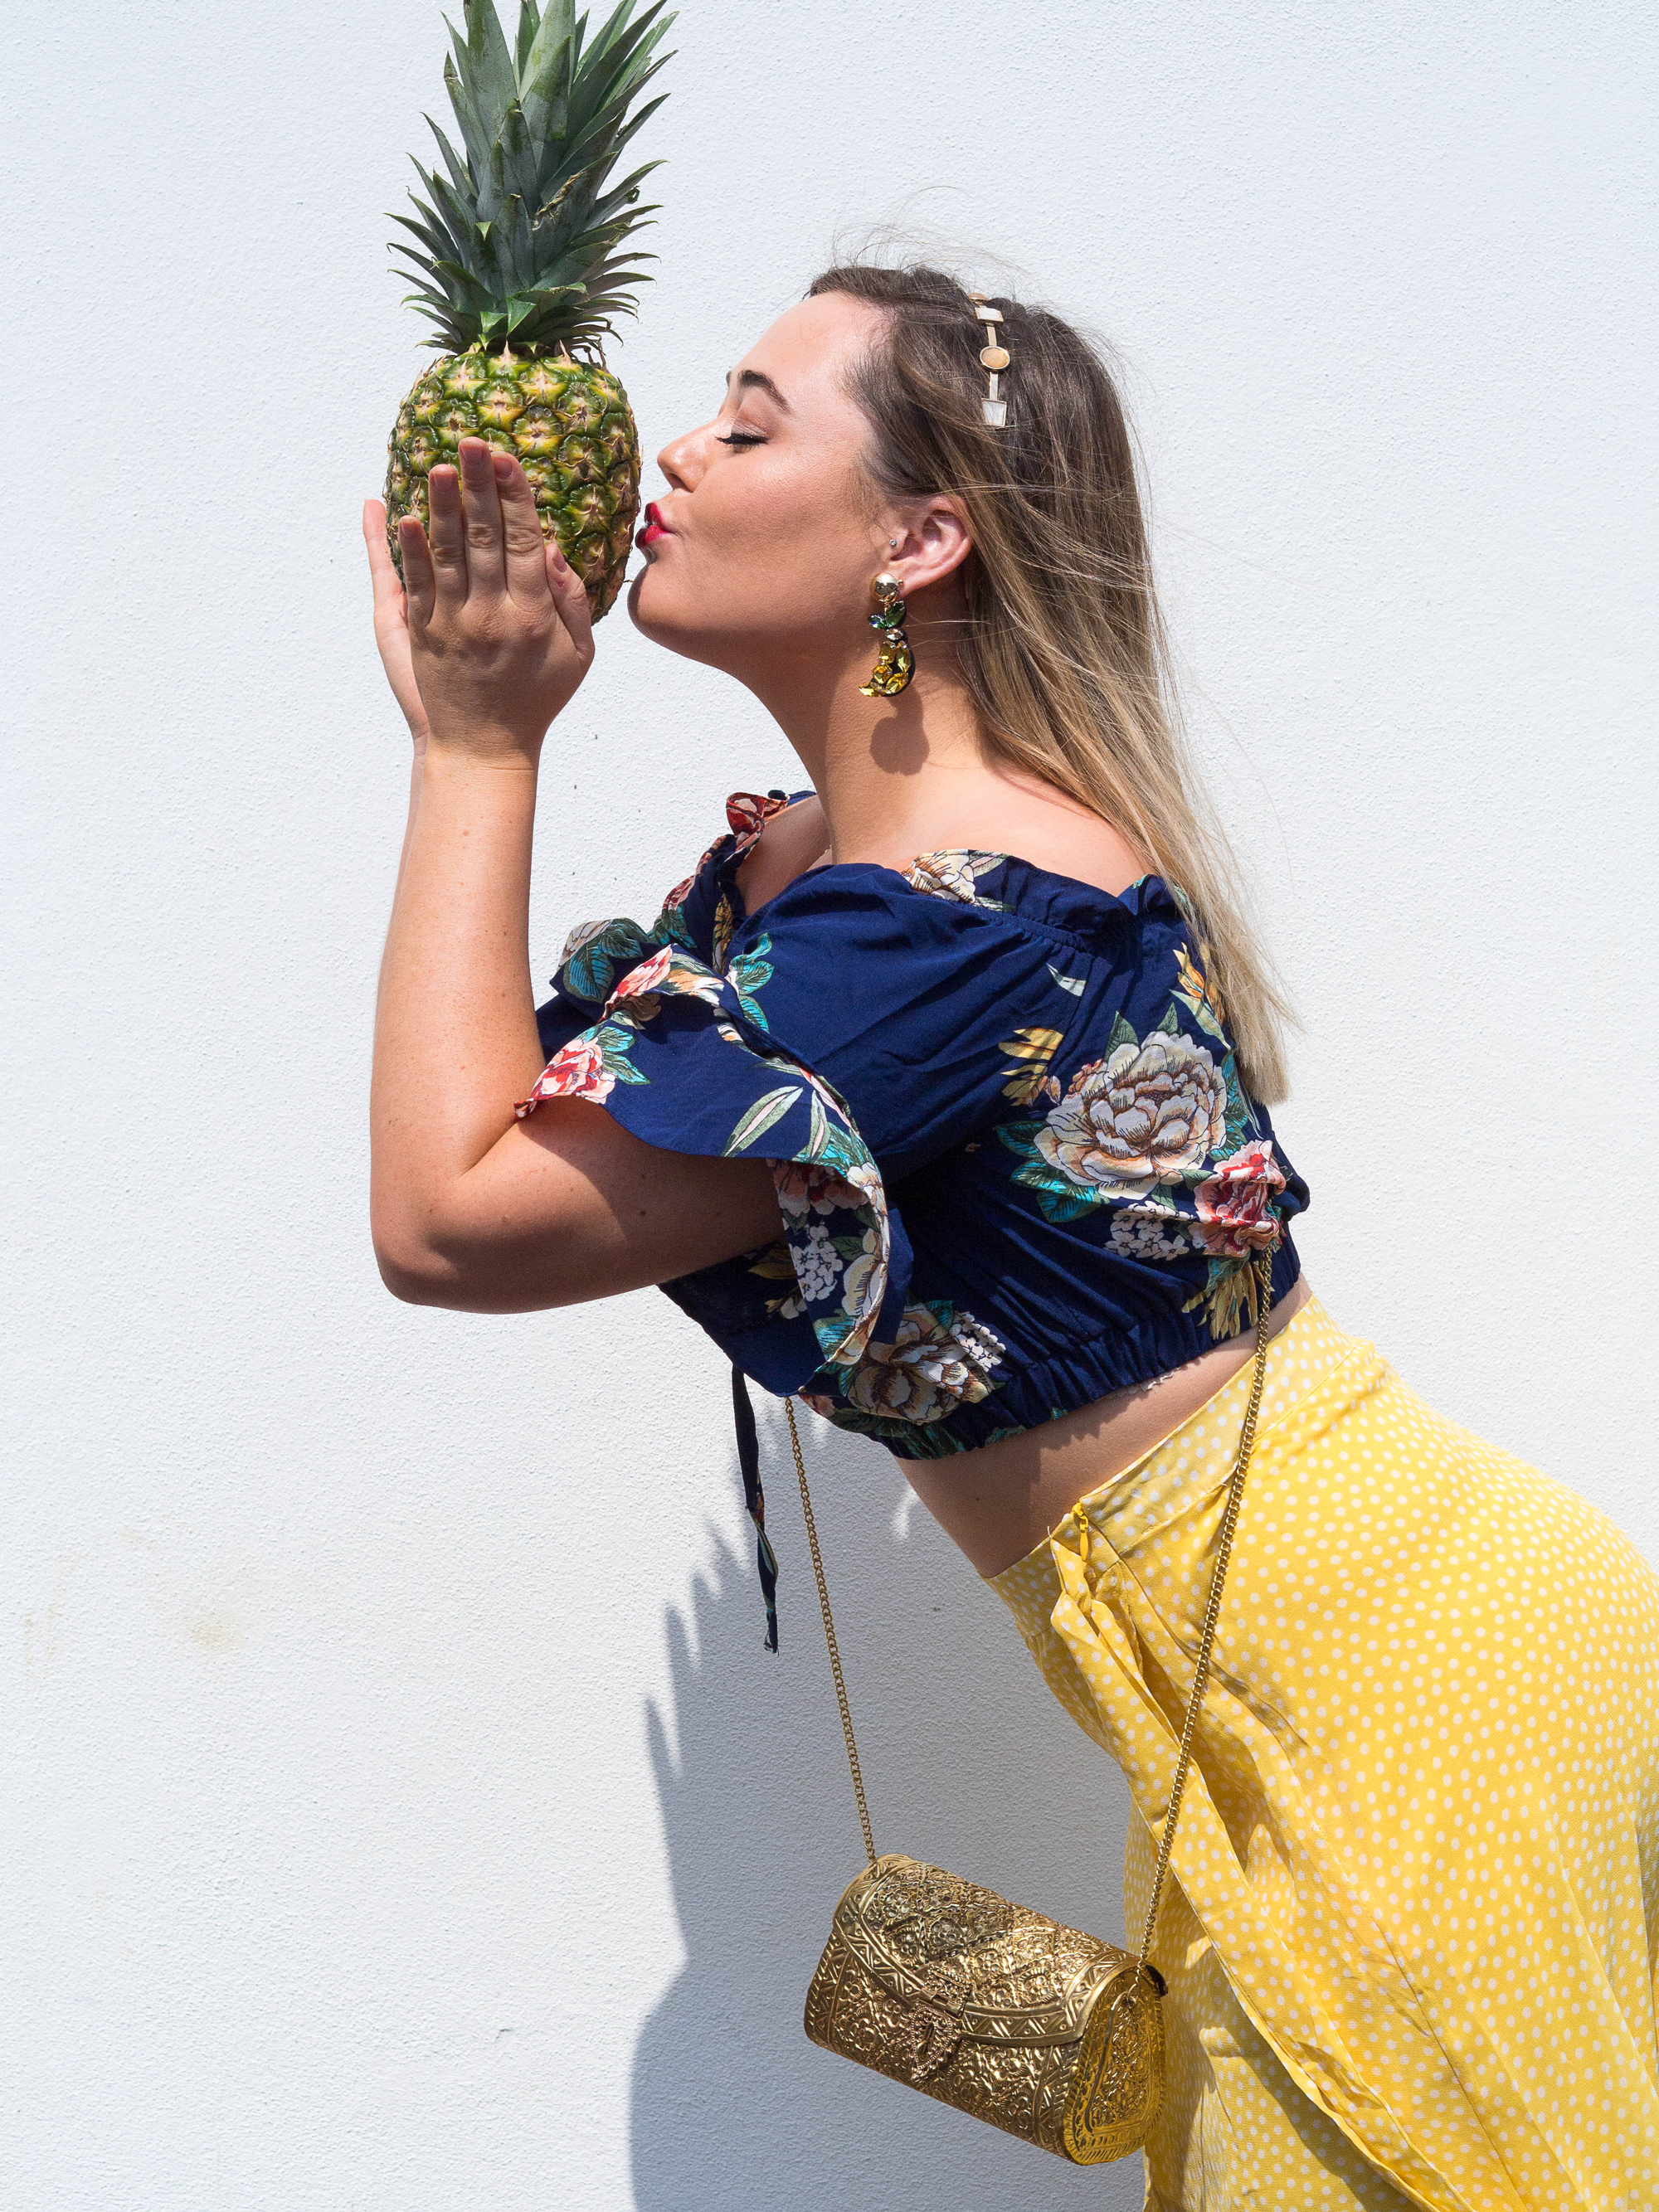 Hannah kisses a pineapple